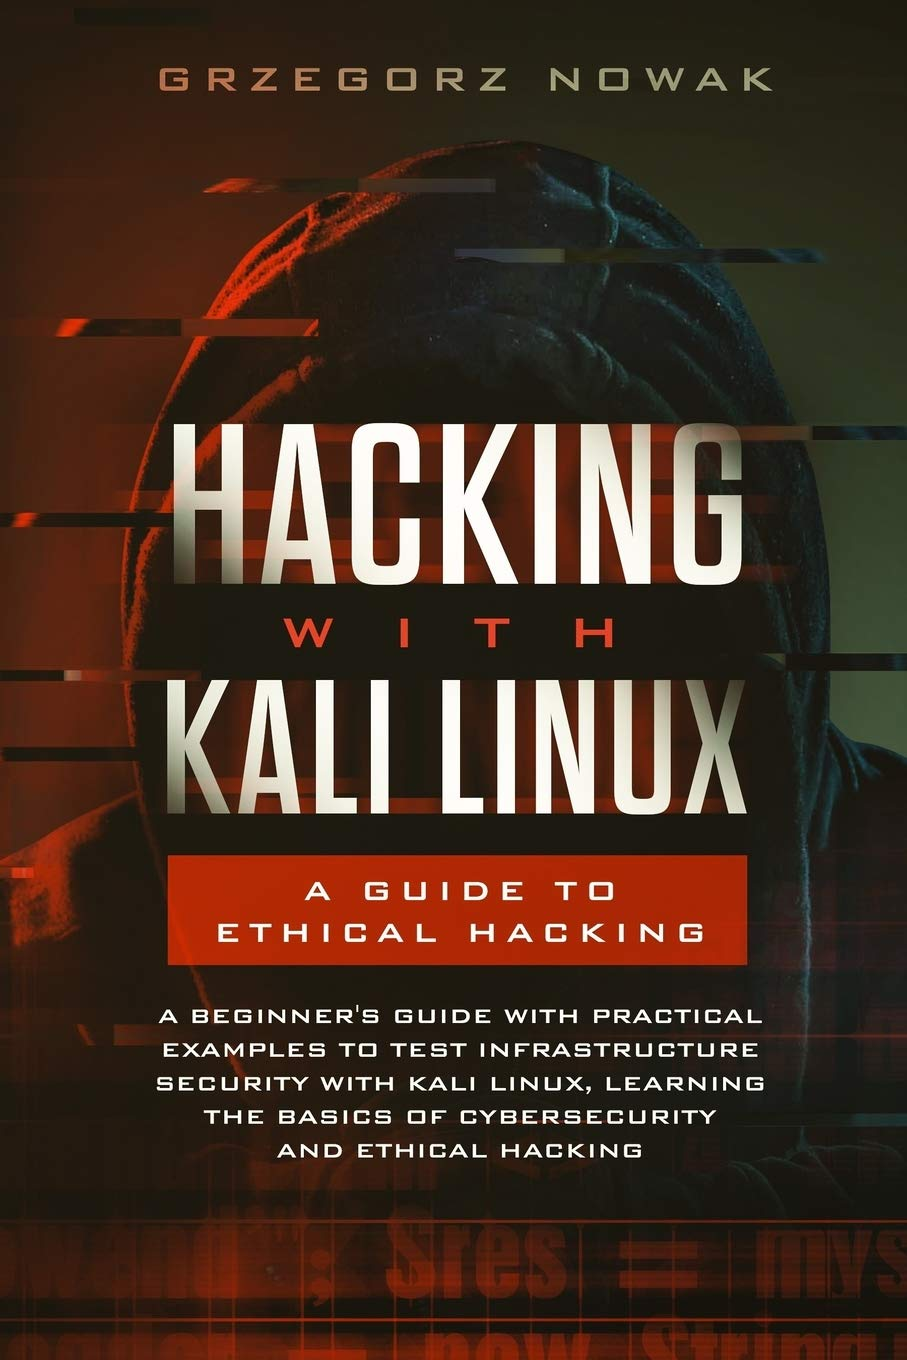 Hacking with Kali Linux: A Guide to Ethical Hacking: A Beginner's Guide with Practical Examples to Learn the Basics of CyberSecurity and Ethical Hacking,Testing Infrastructure Security with Kali Linux